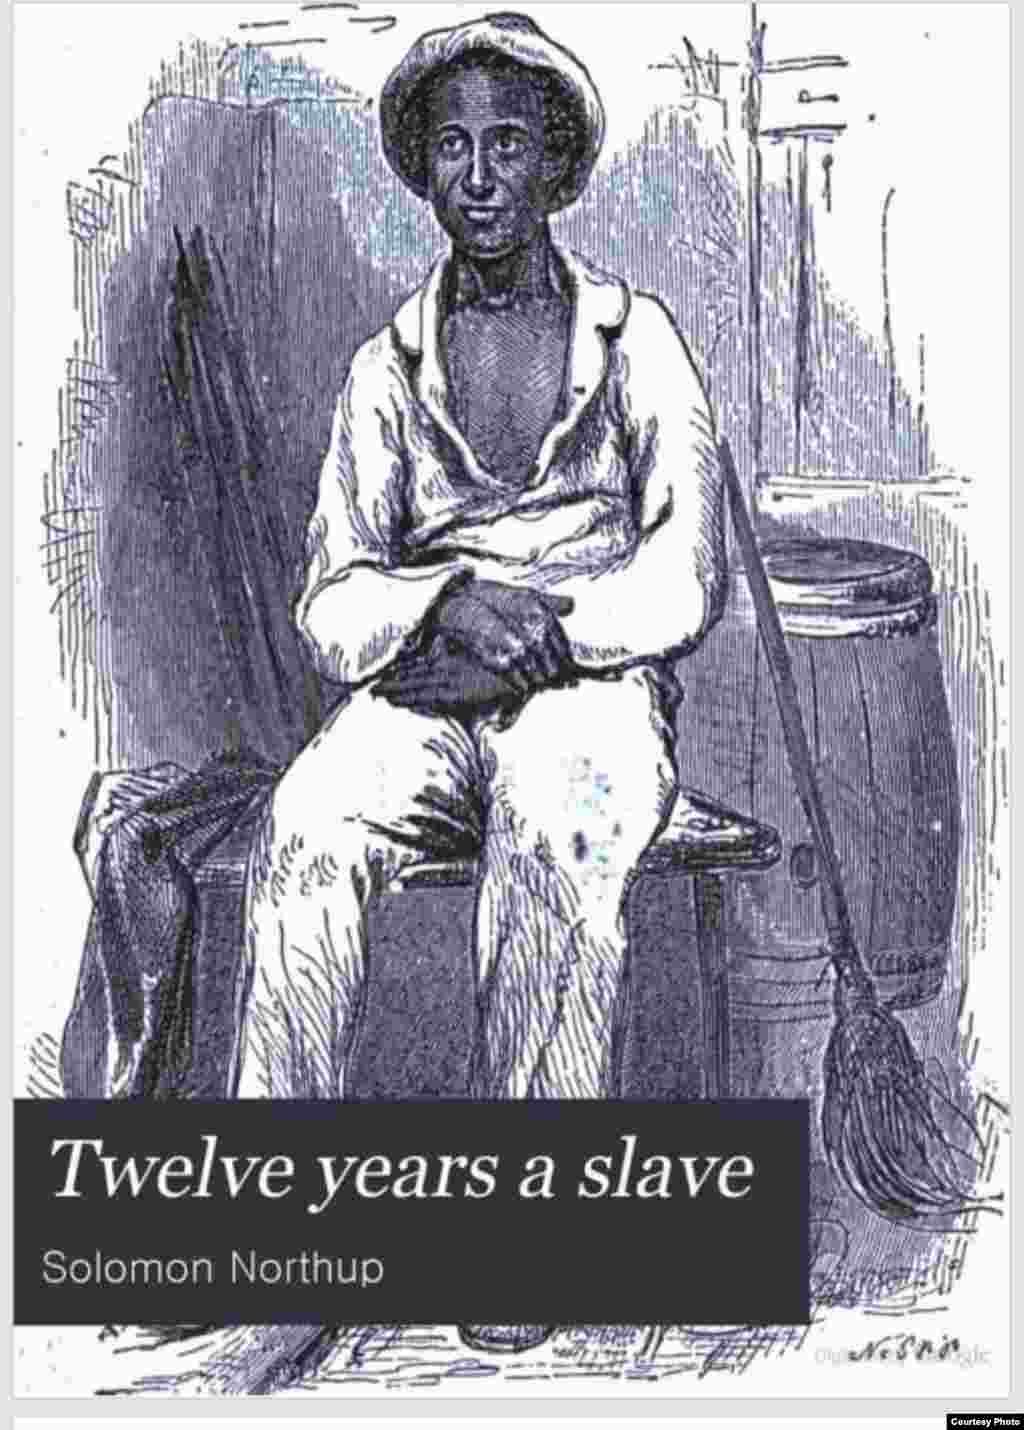 A woodblock print from the original 1853 publication of Twelve Years a Slave showing the author, Solomon Northup.